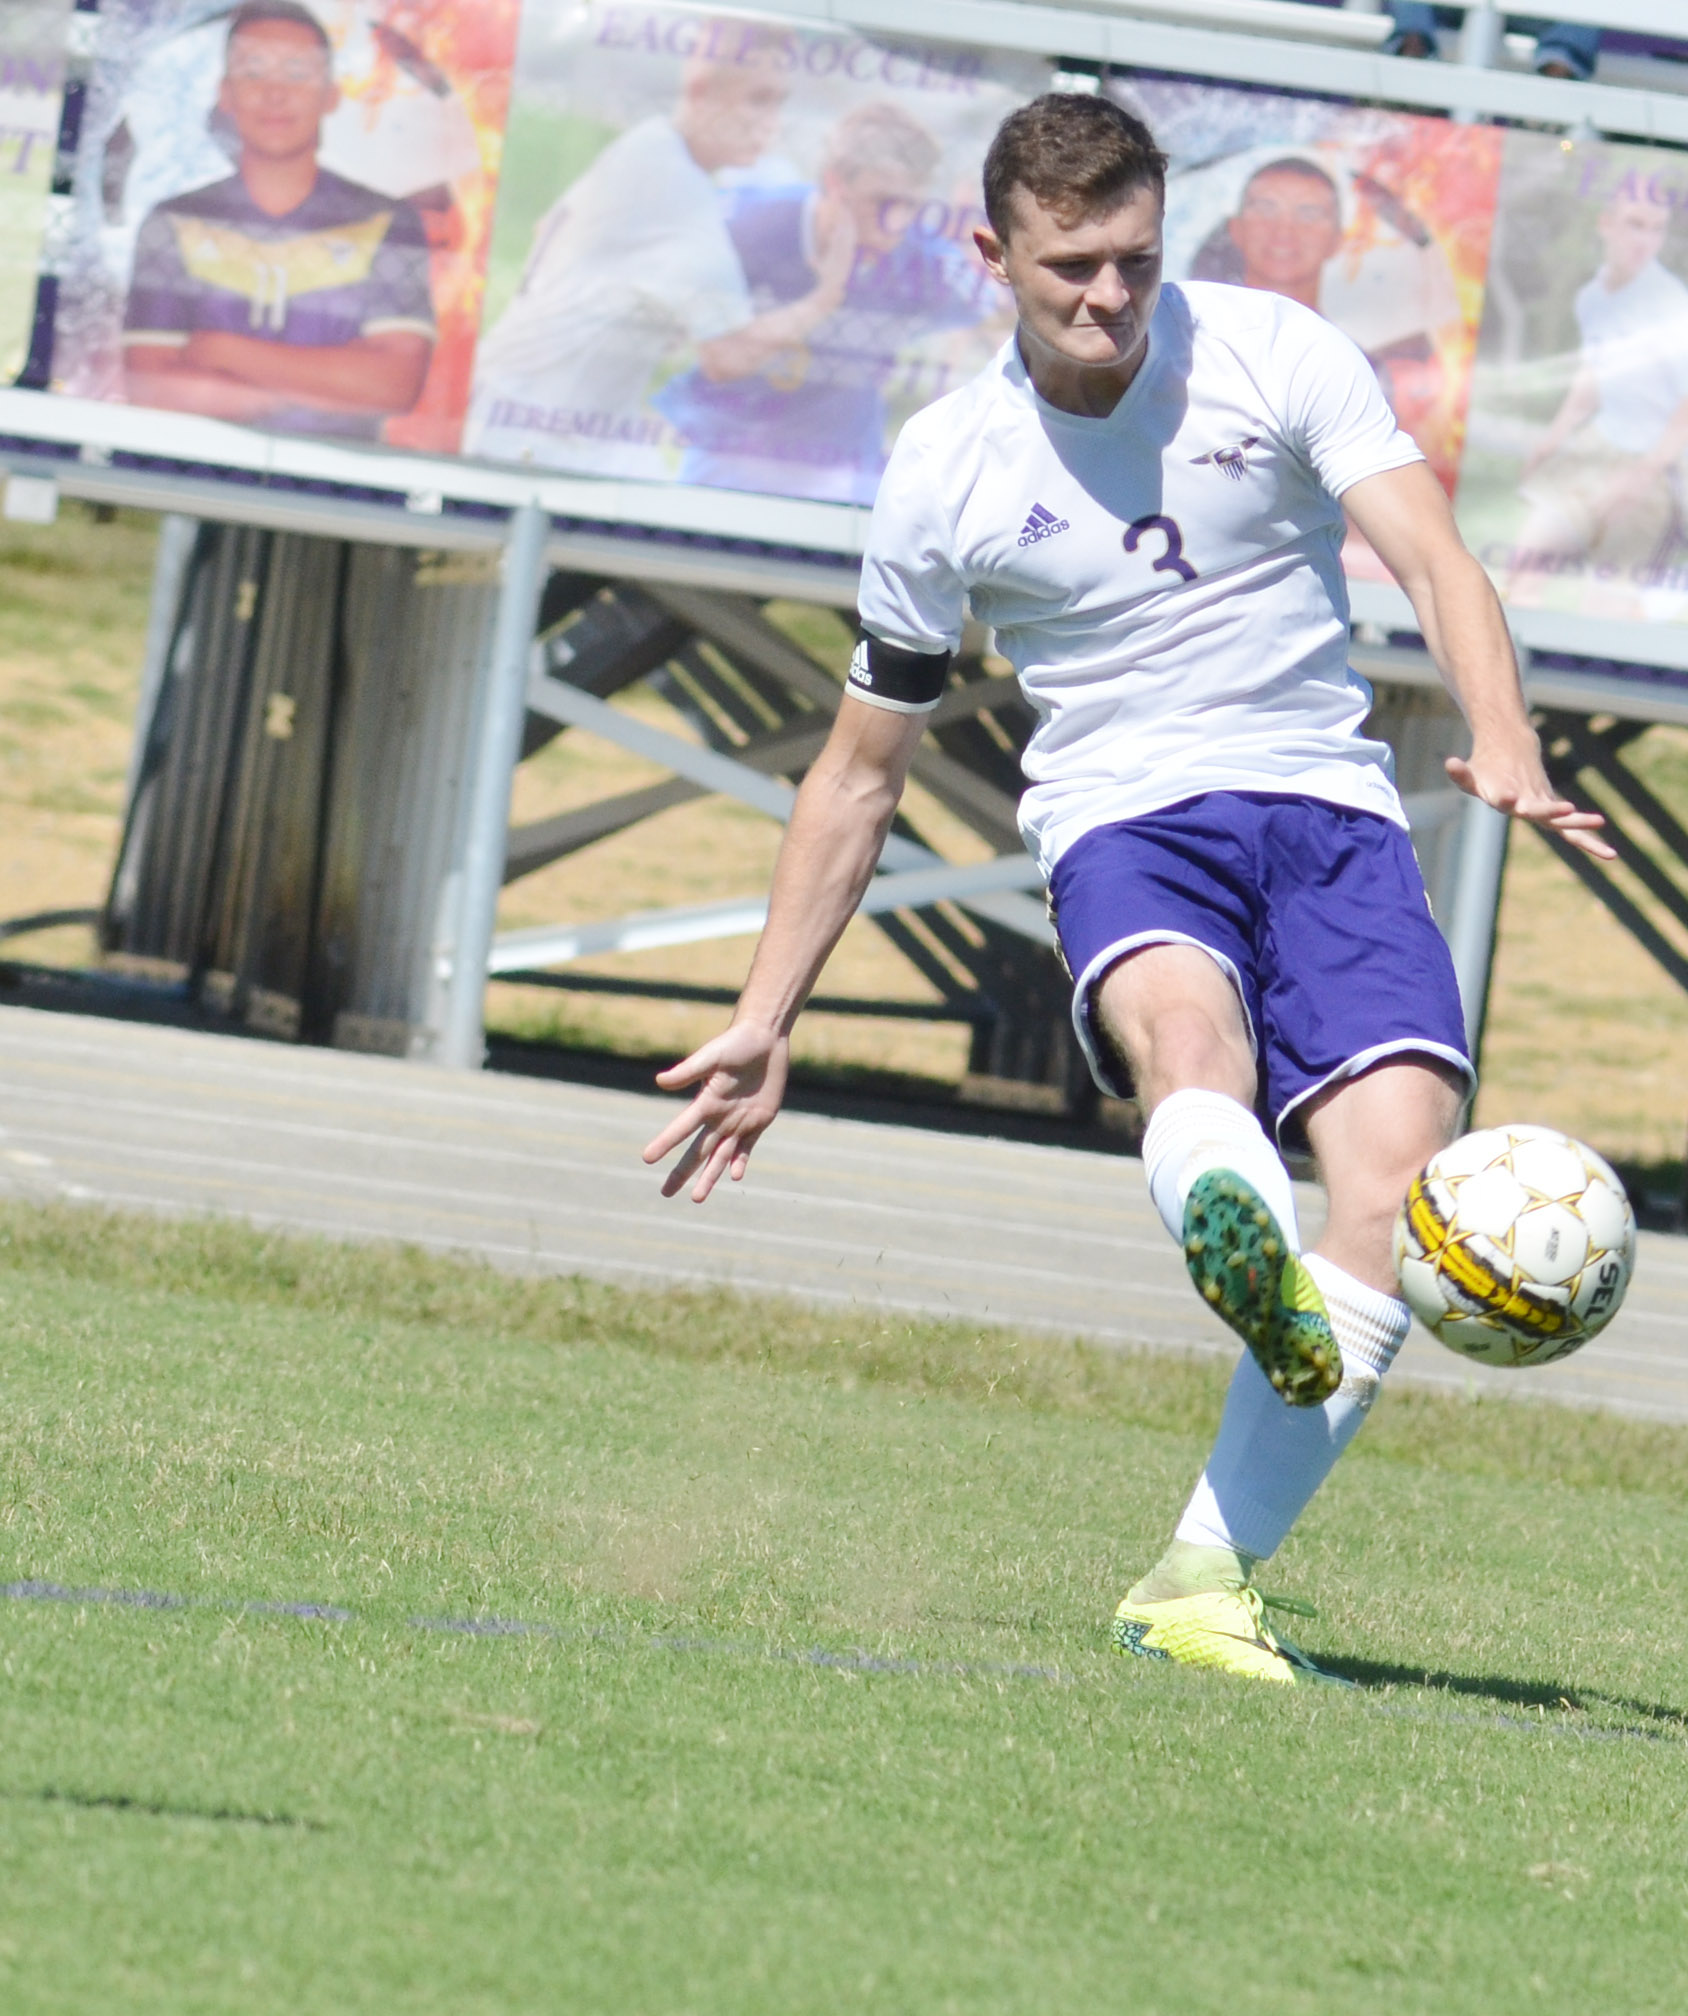 CHS senior Bryce Richardson kicks the ball.